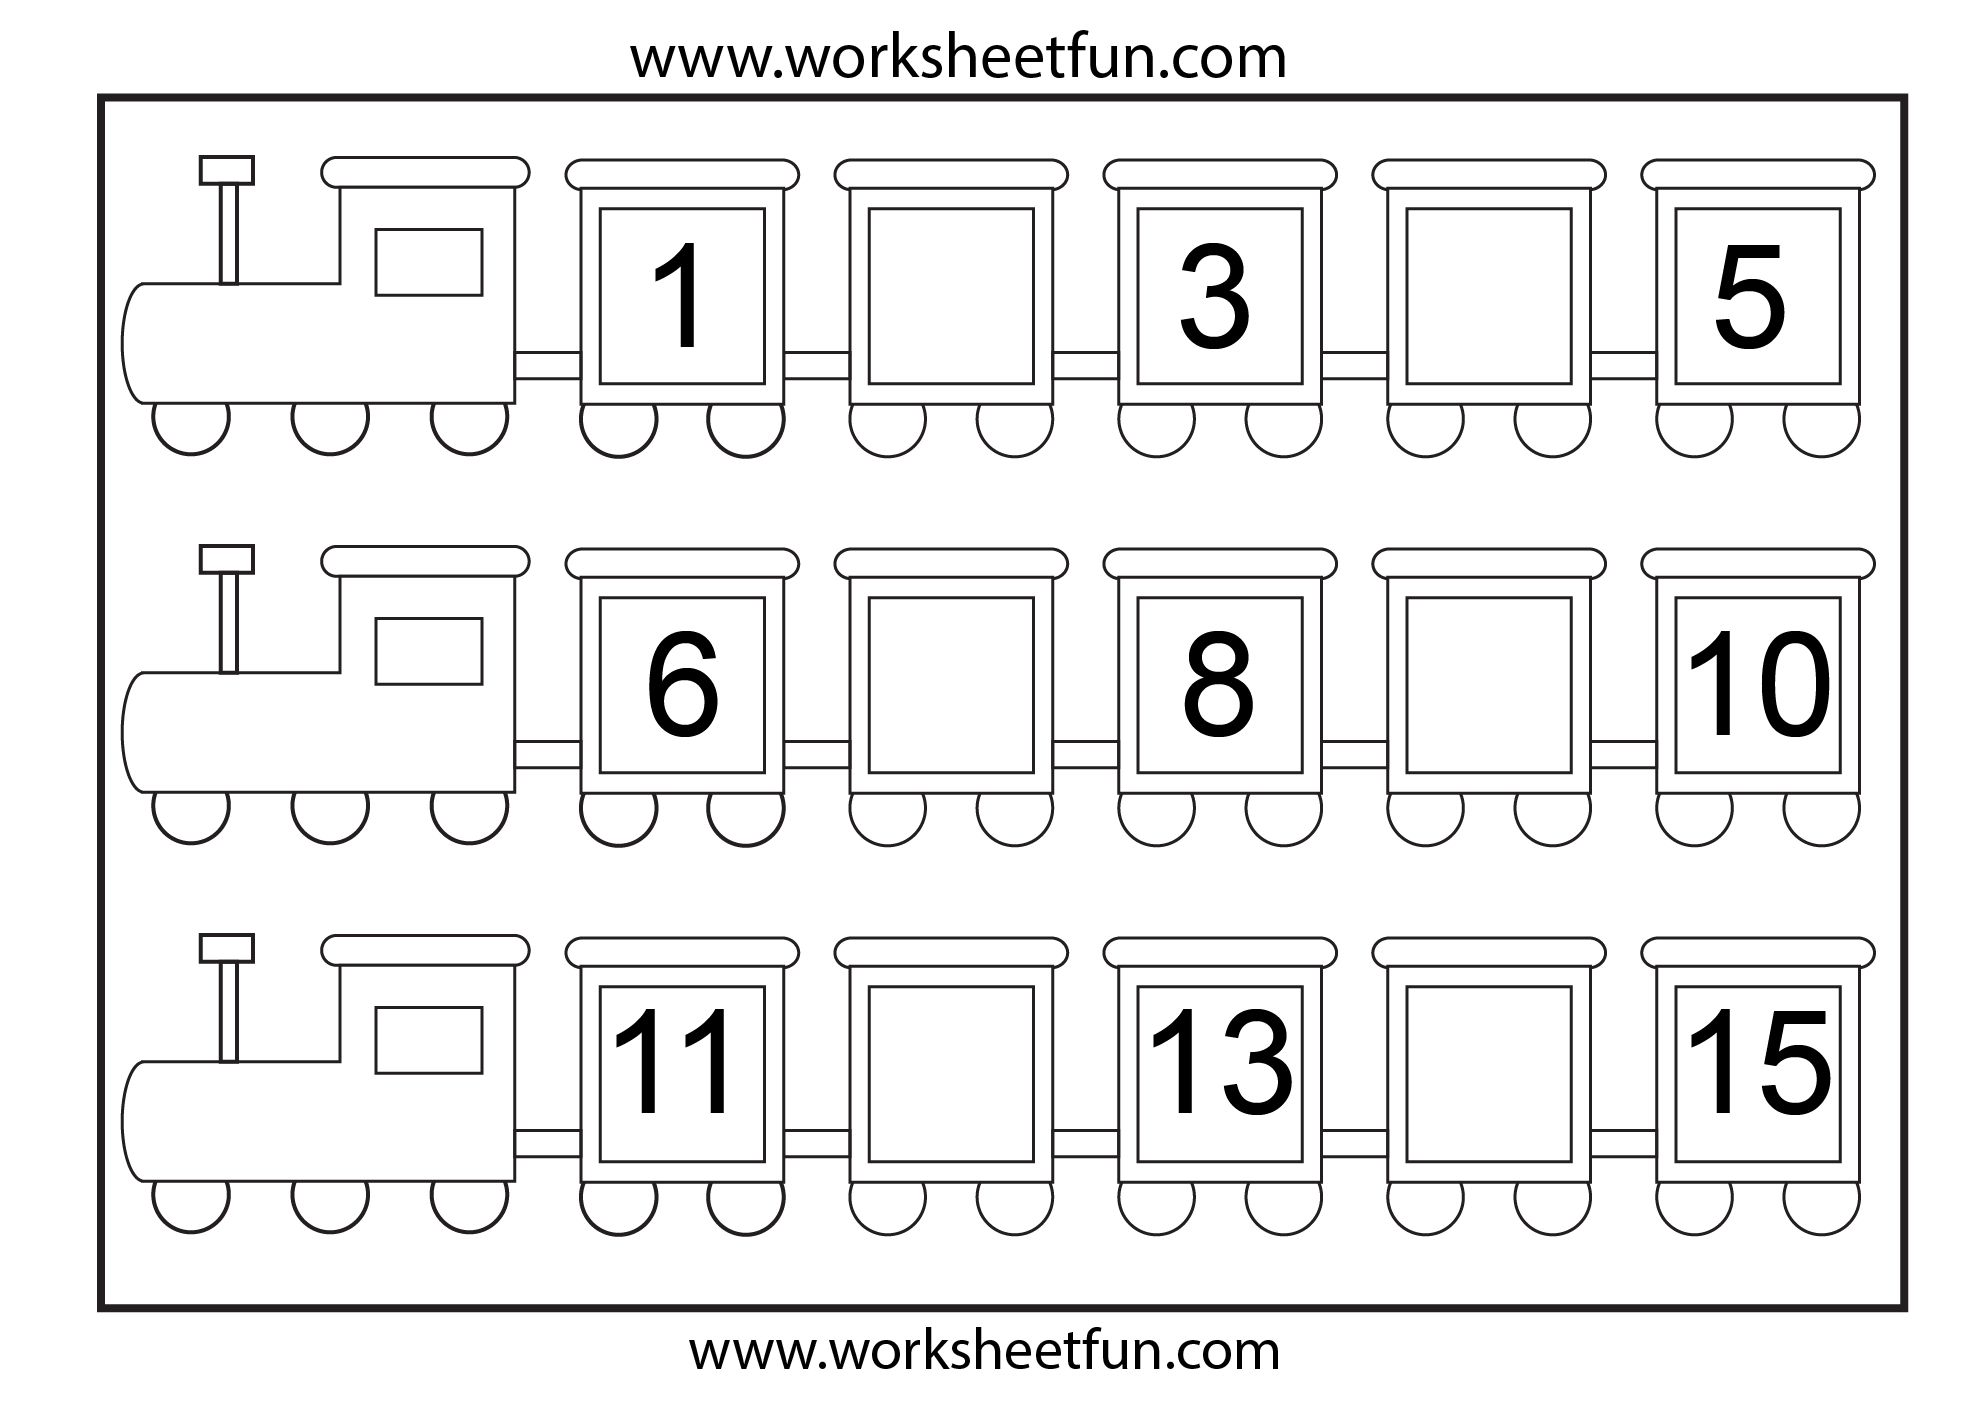 Missing Number Worksheet New 365 Missing Number Worksheets